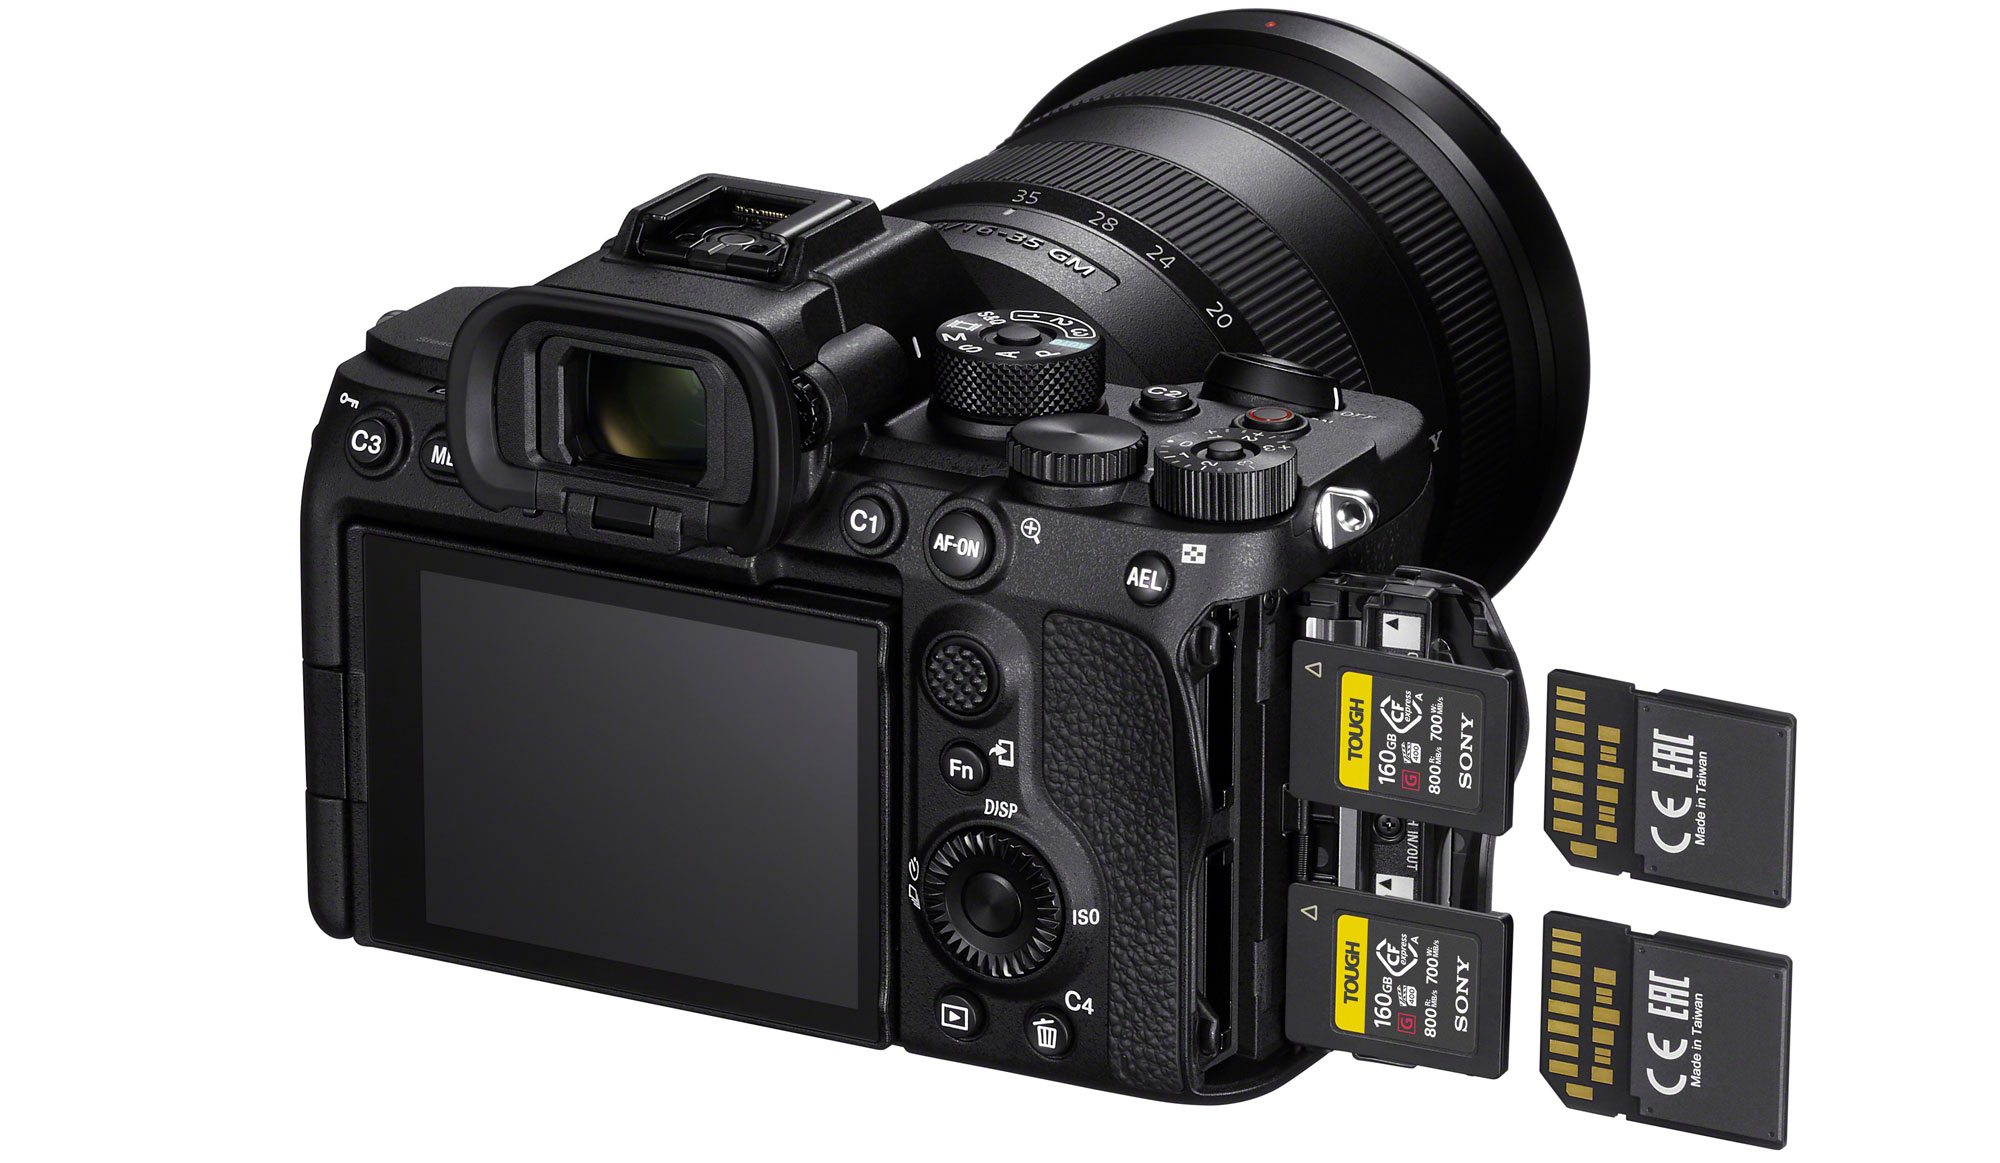 CFexpress Type A shown in use with the Sony a7S III. The card size offers enhanced speed while allowing the camera to support SD cards using a unique slot design.